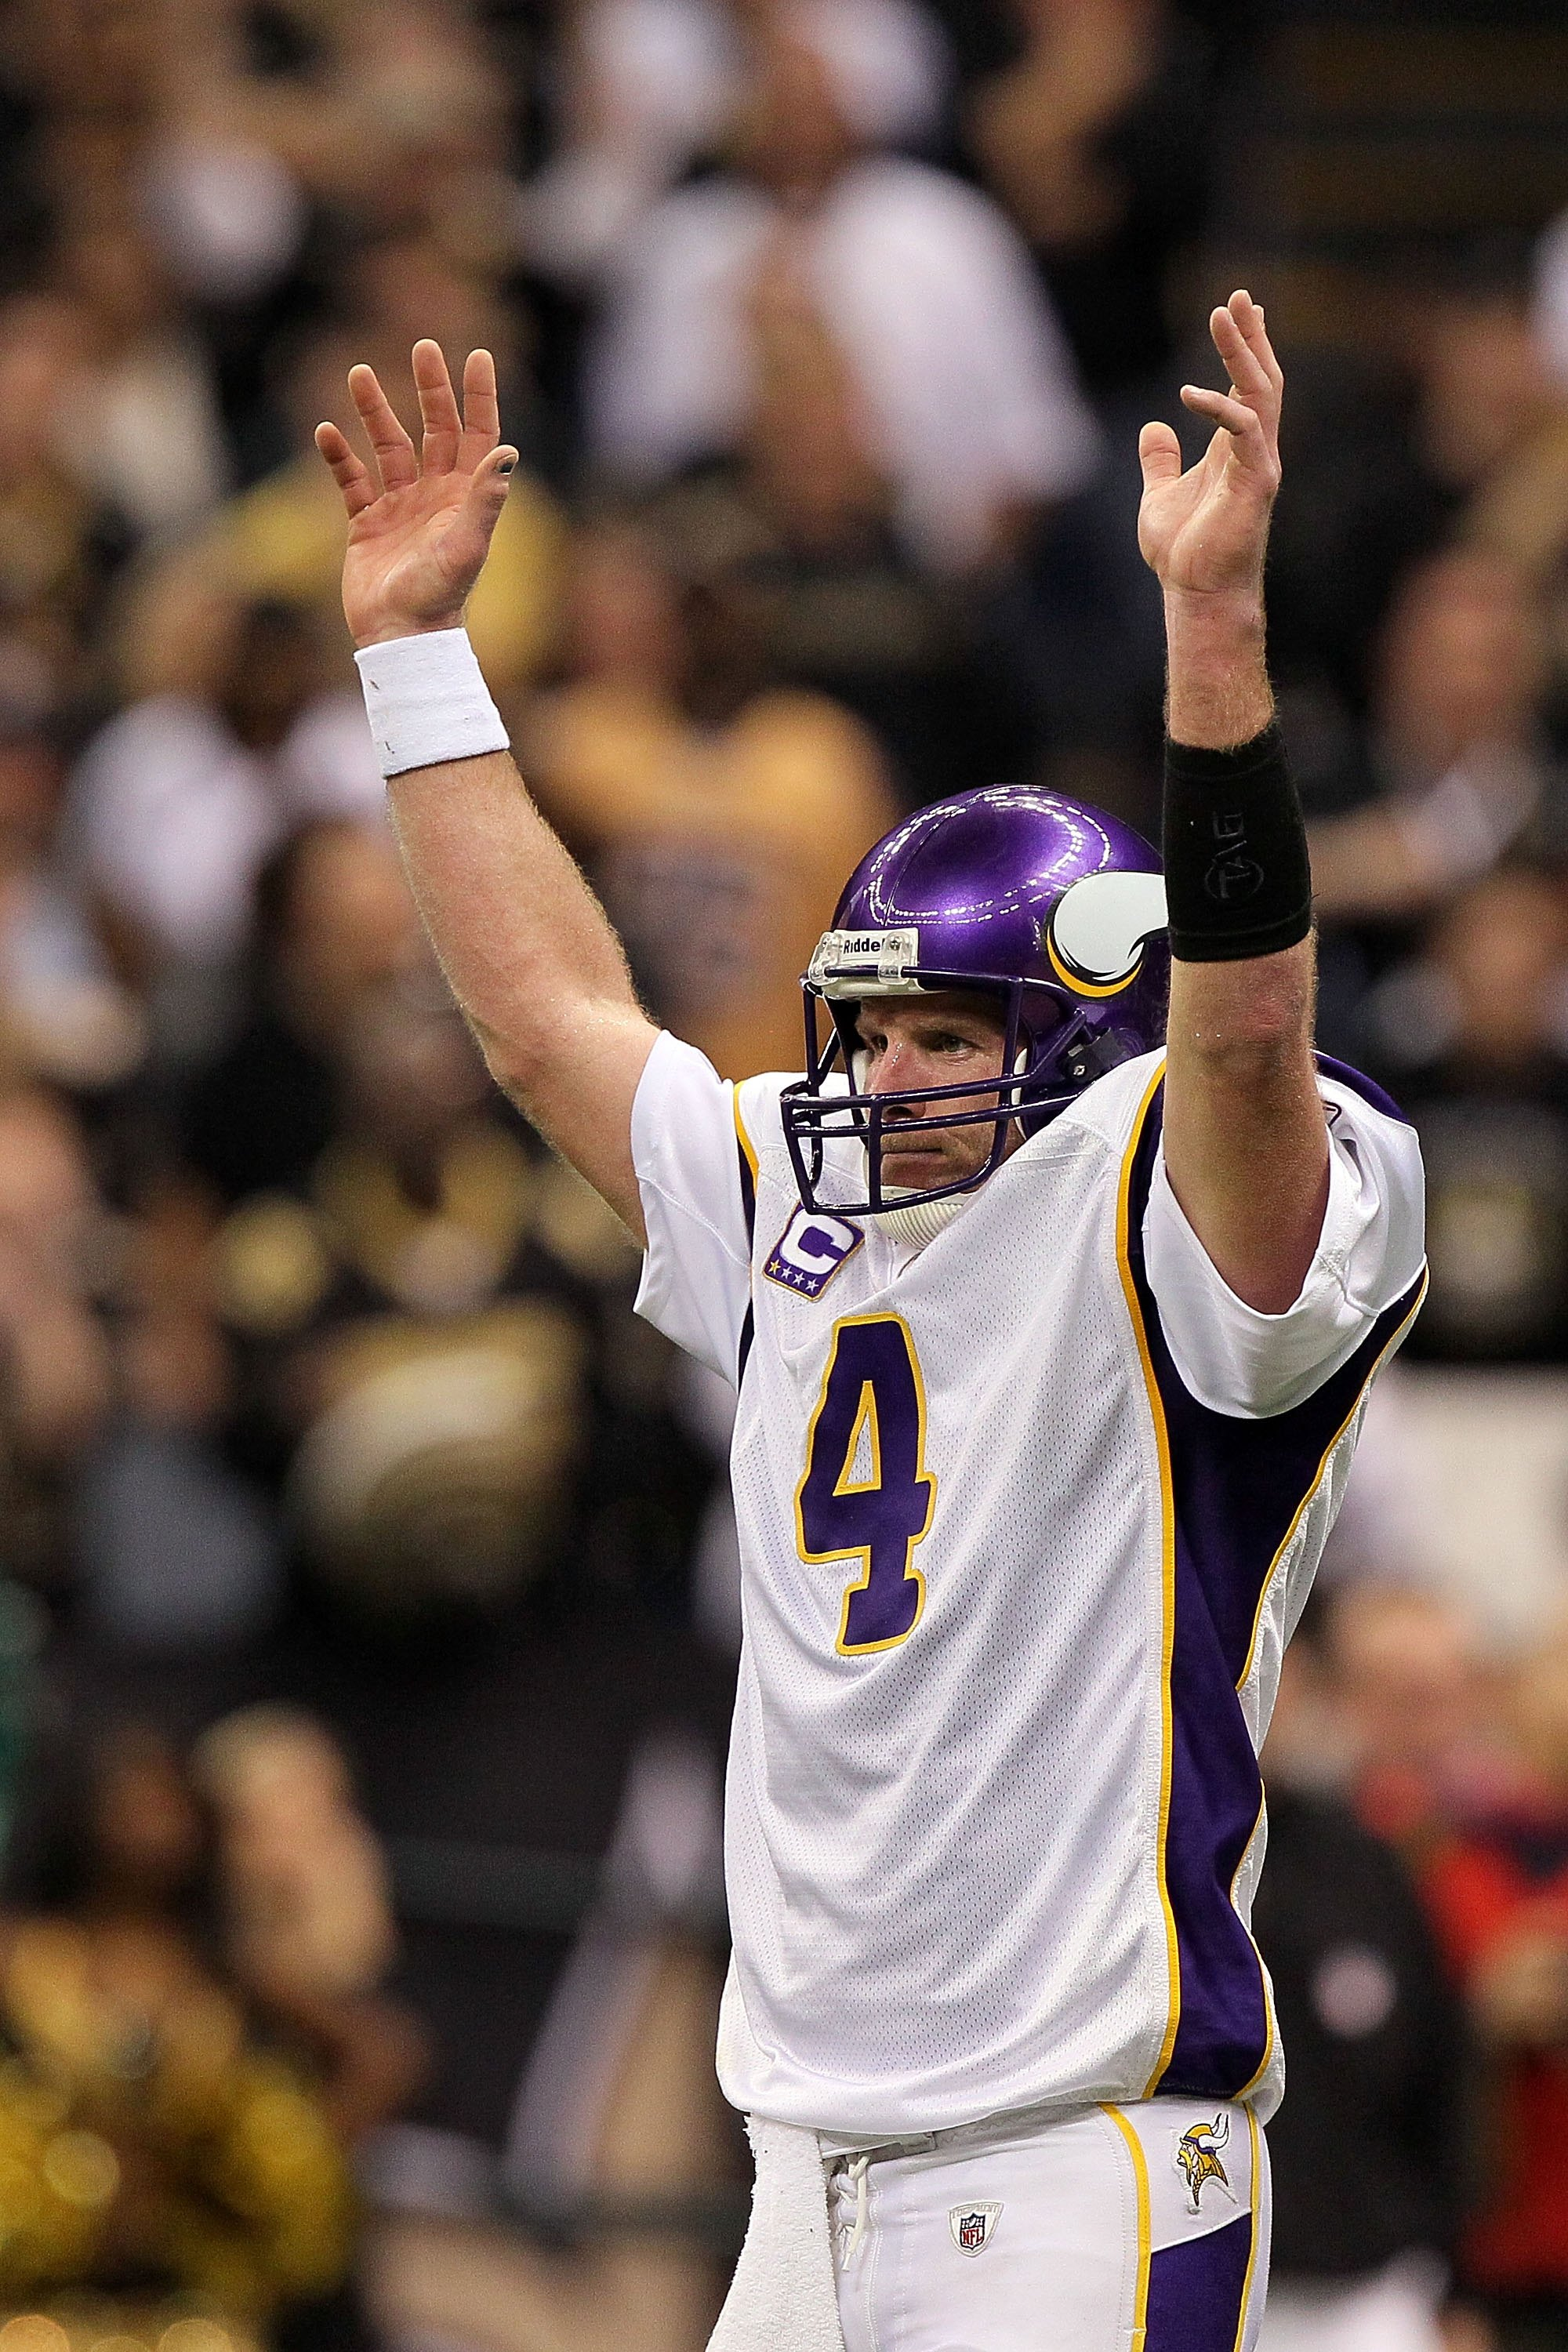 NEW ORLEANS - JANUARY 24:  Brett Favre #4 of the Minnesota Vikings reacts after the Vikings scored a touchdown against the New Orleans Saints during the NFC Championship Game at the Louisiana Superdome on January 24, 2010 in New Orleans, Louisiana. The Sa